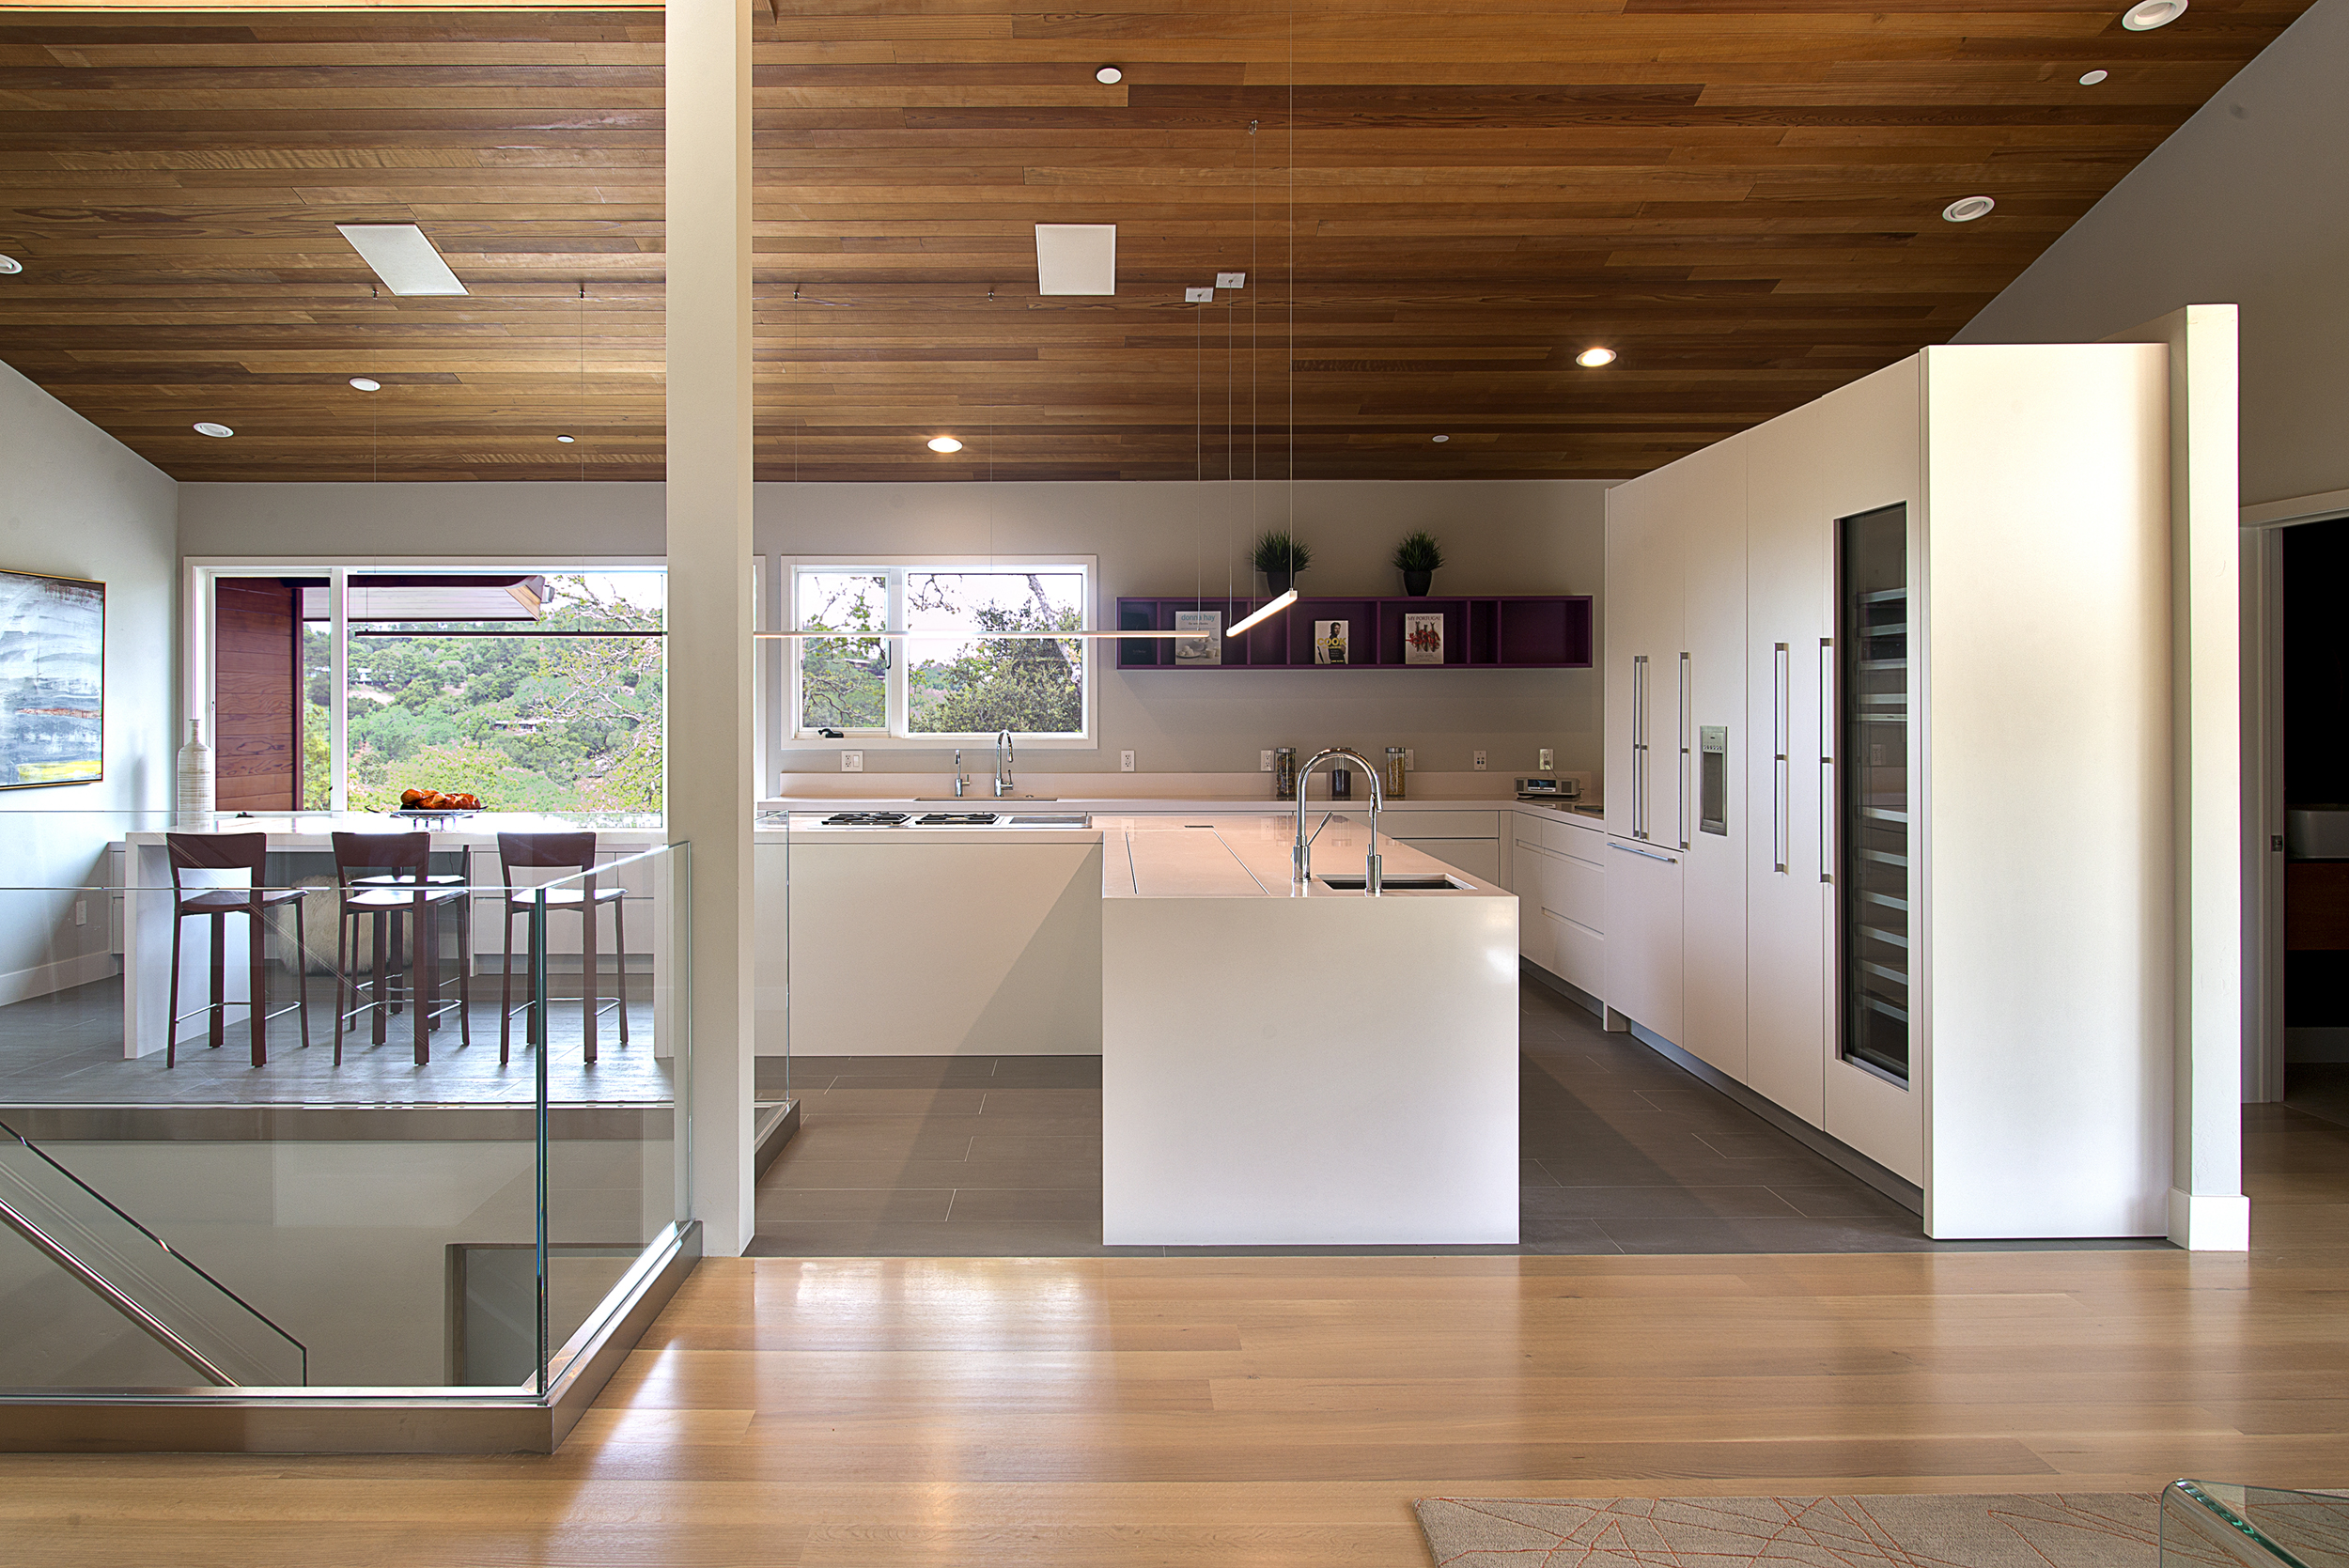 A white kitchen with vaulted wood ceiling and Mutina tile floor.